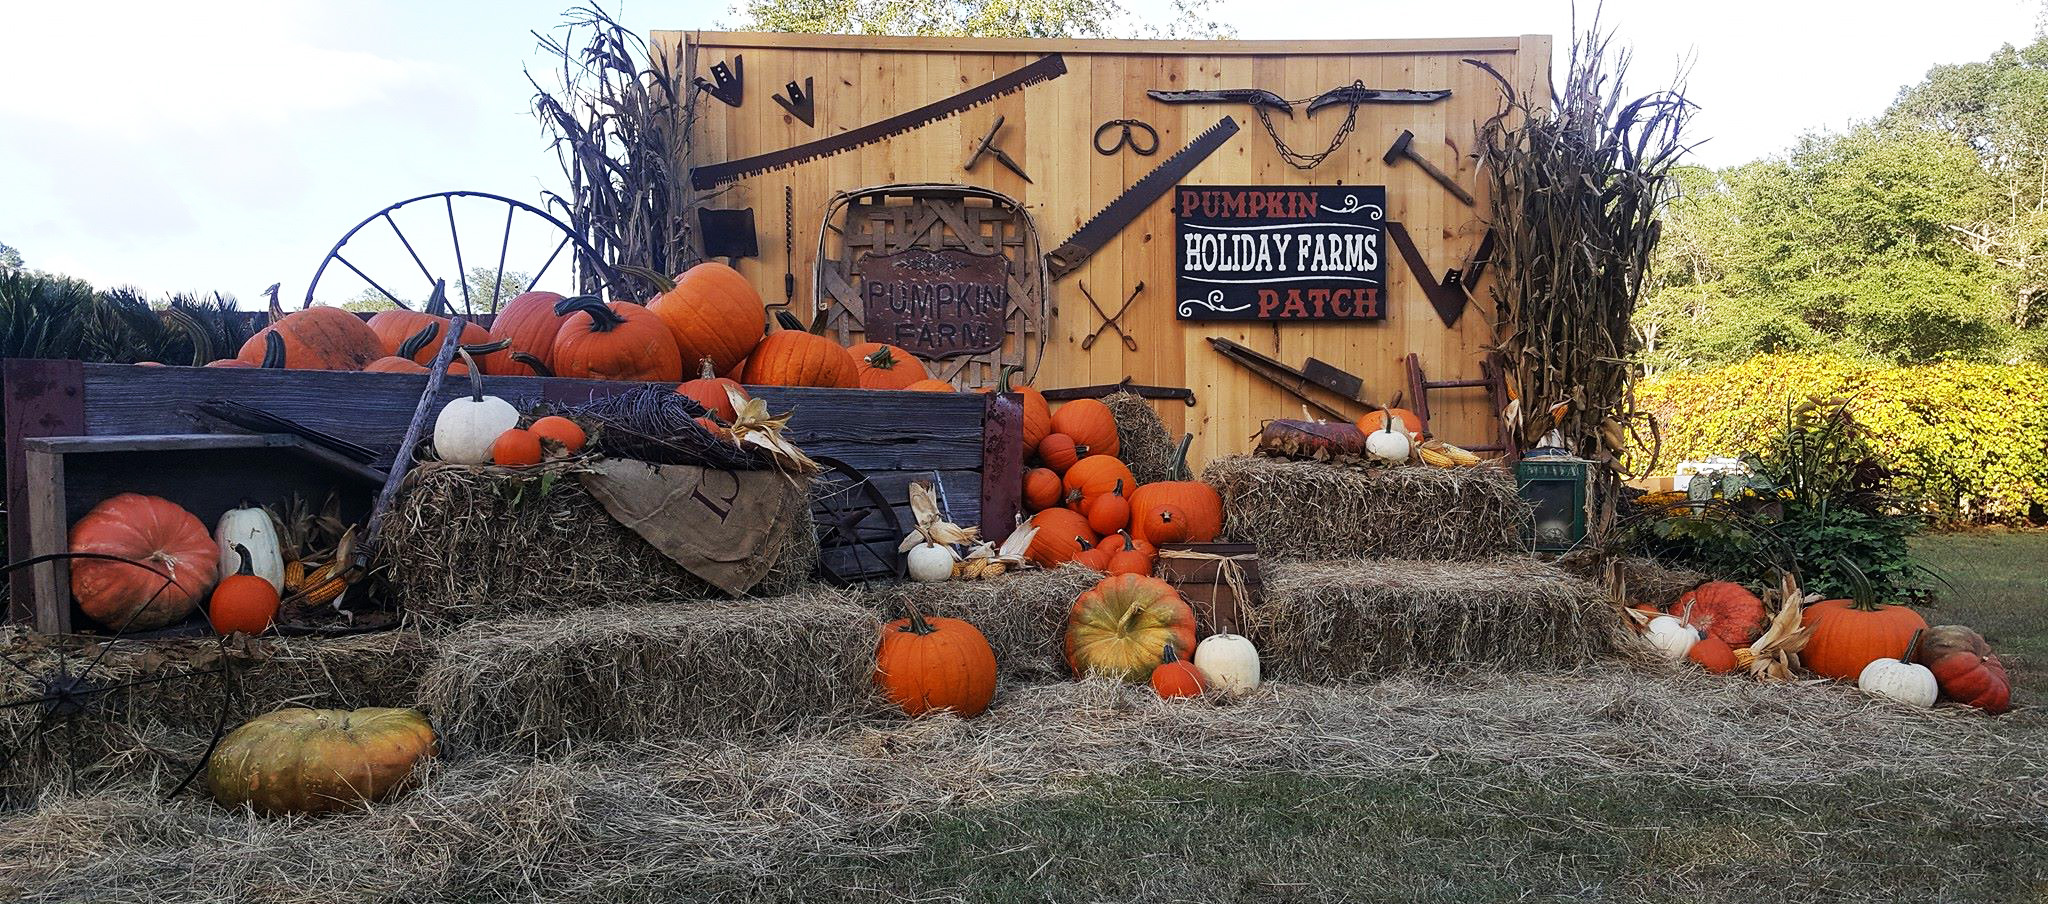 SC Lowcountry Pumpkin Patches and Beaufort Ghost Tours